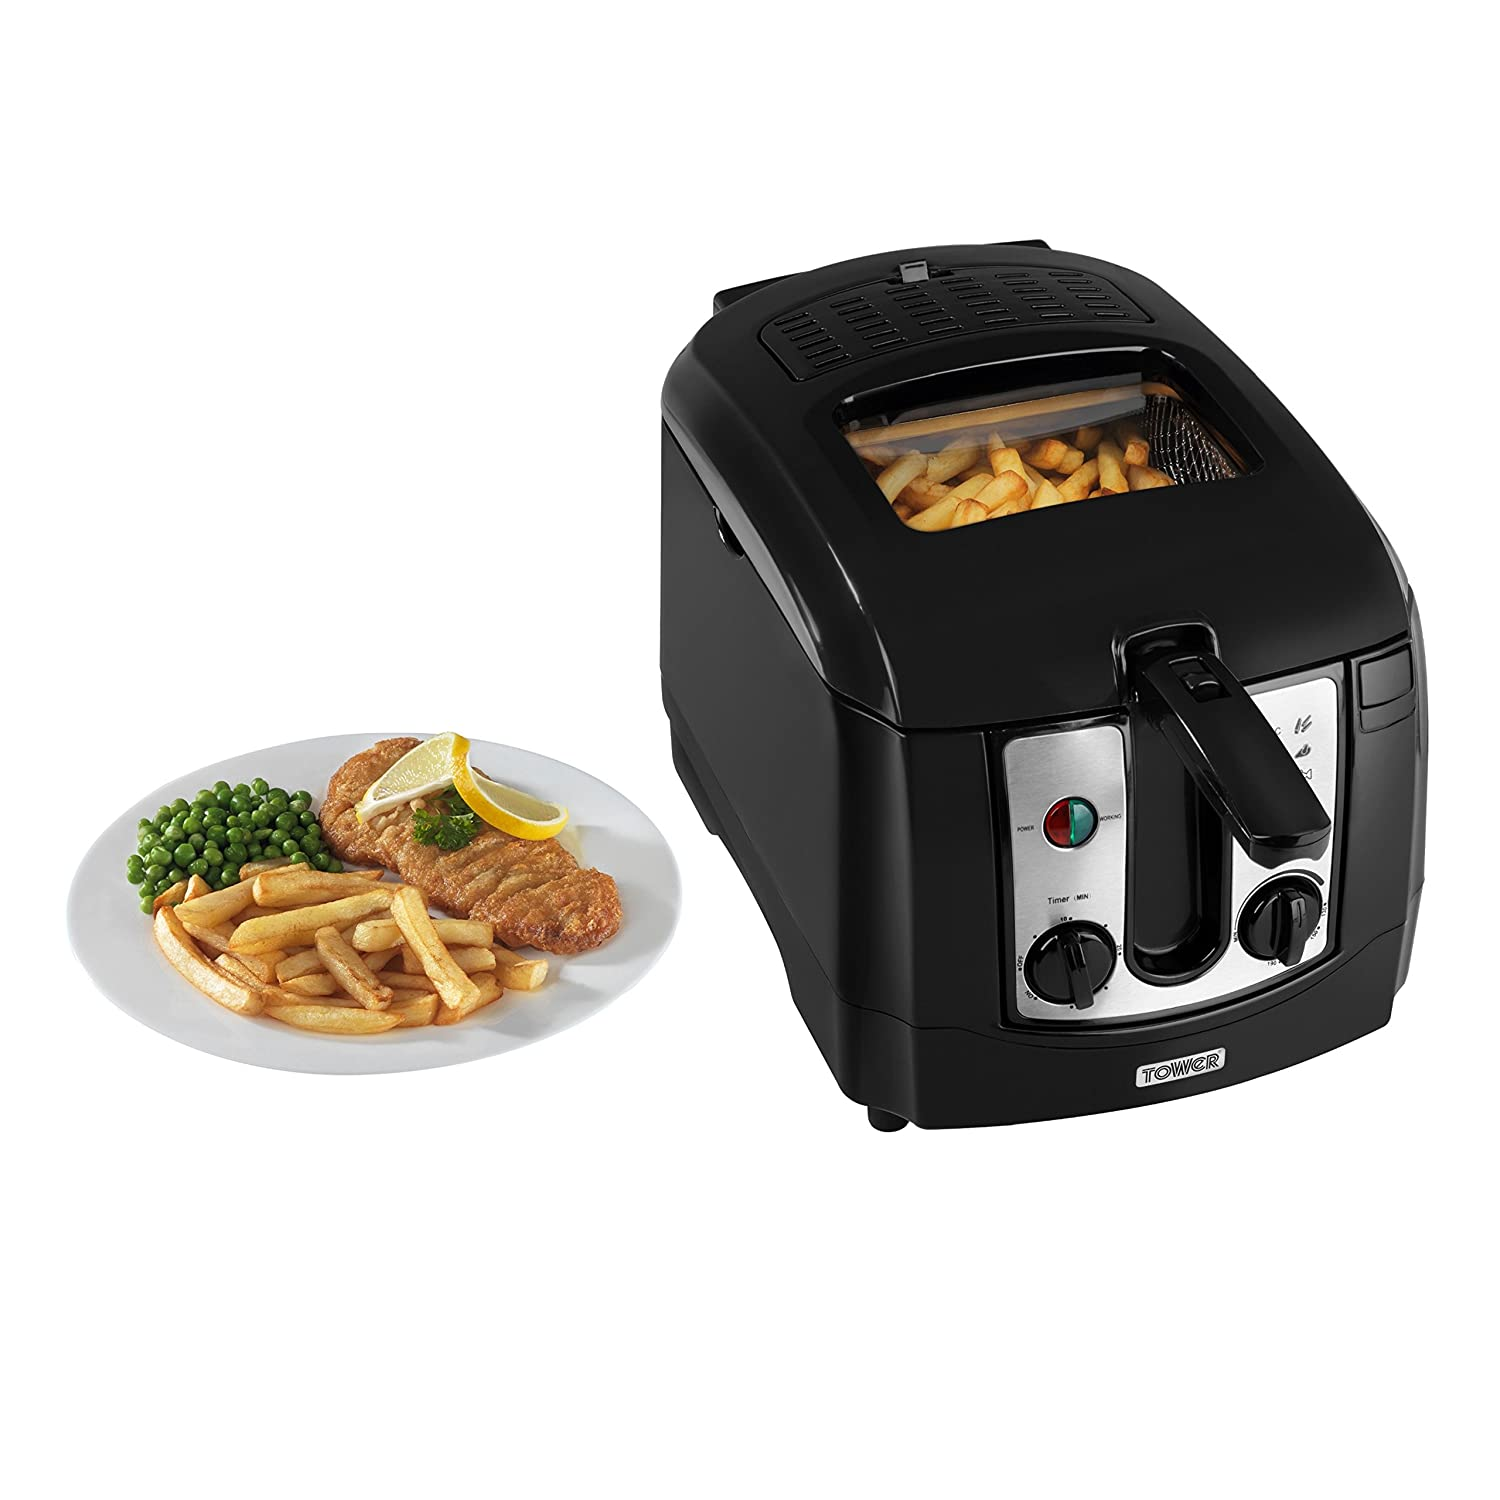 This small deep fat fryer is a very good product.